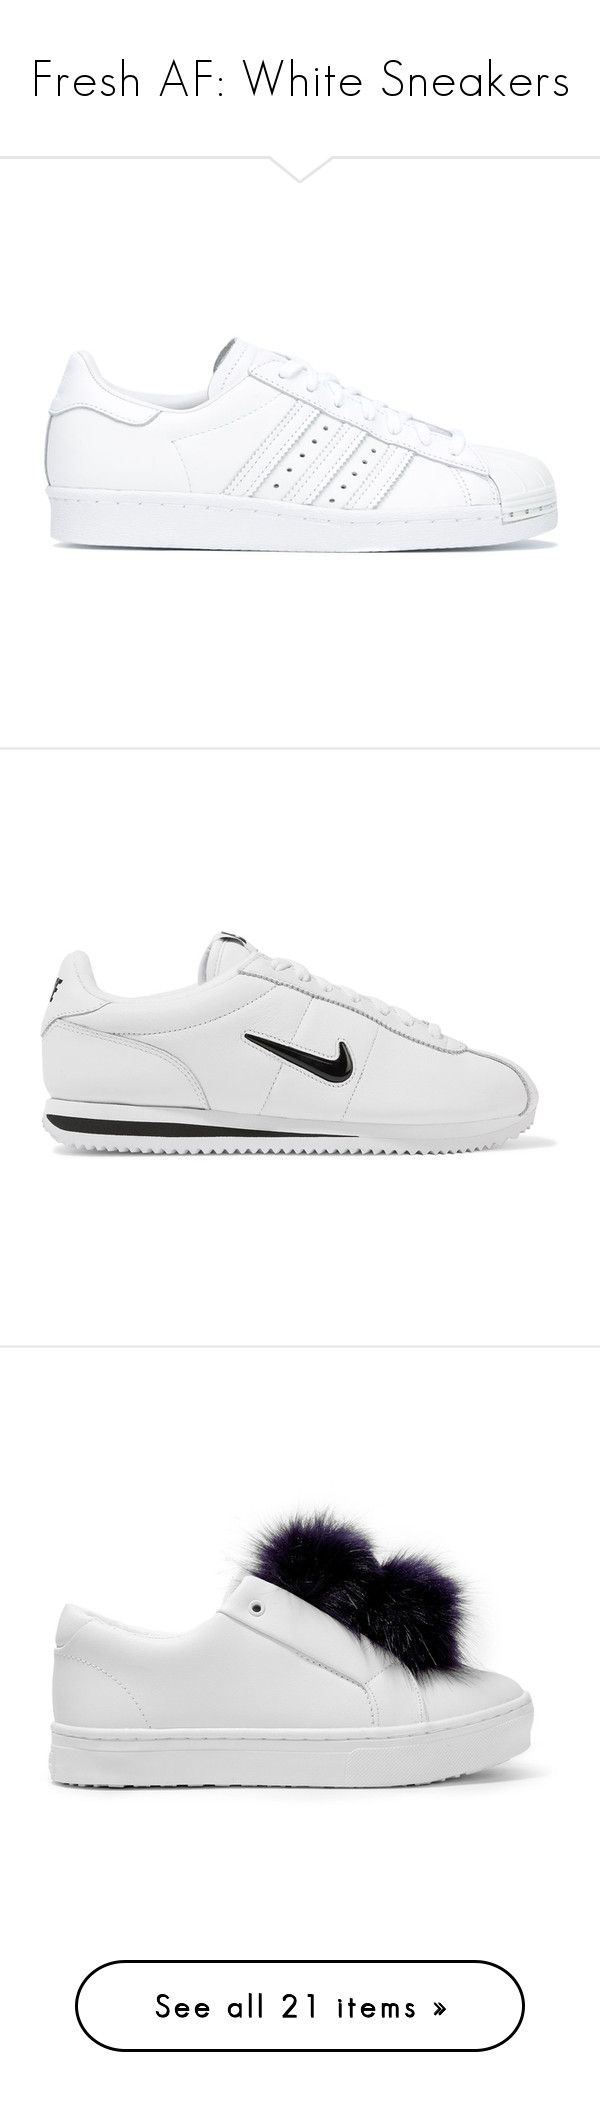 """""""Fresh AF: White Sneakers"""" by polyvore-editorial ❤ liked on Polyvore featuring whitesneakers, waystowear, shoes, sneakers, low cut sneakers, canvas sneakers shoes, white lace sneakers, lace sneakers, converse sneakers and white"""